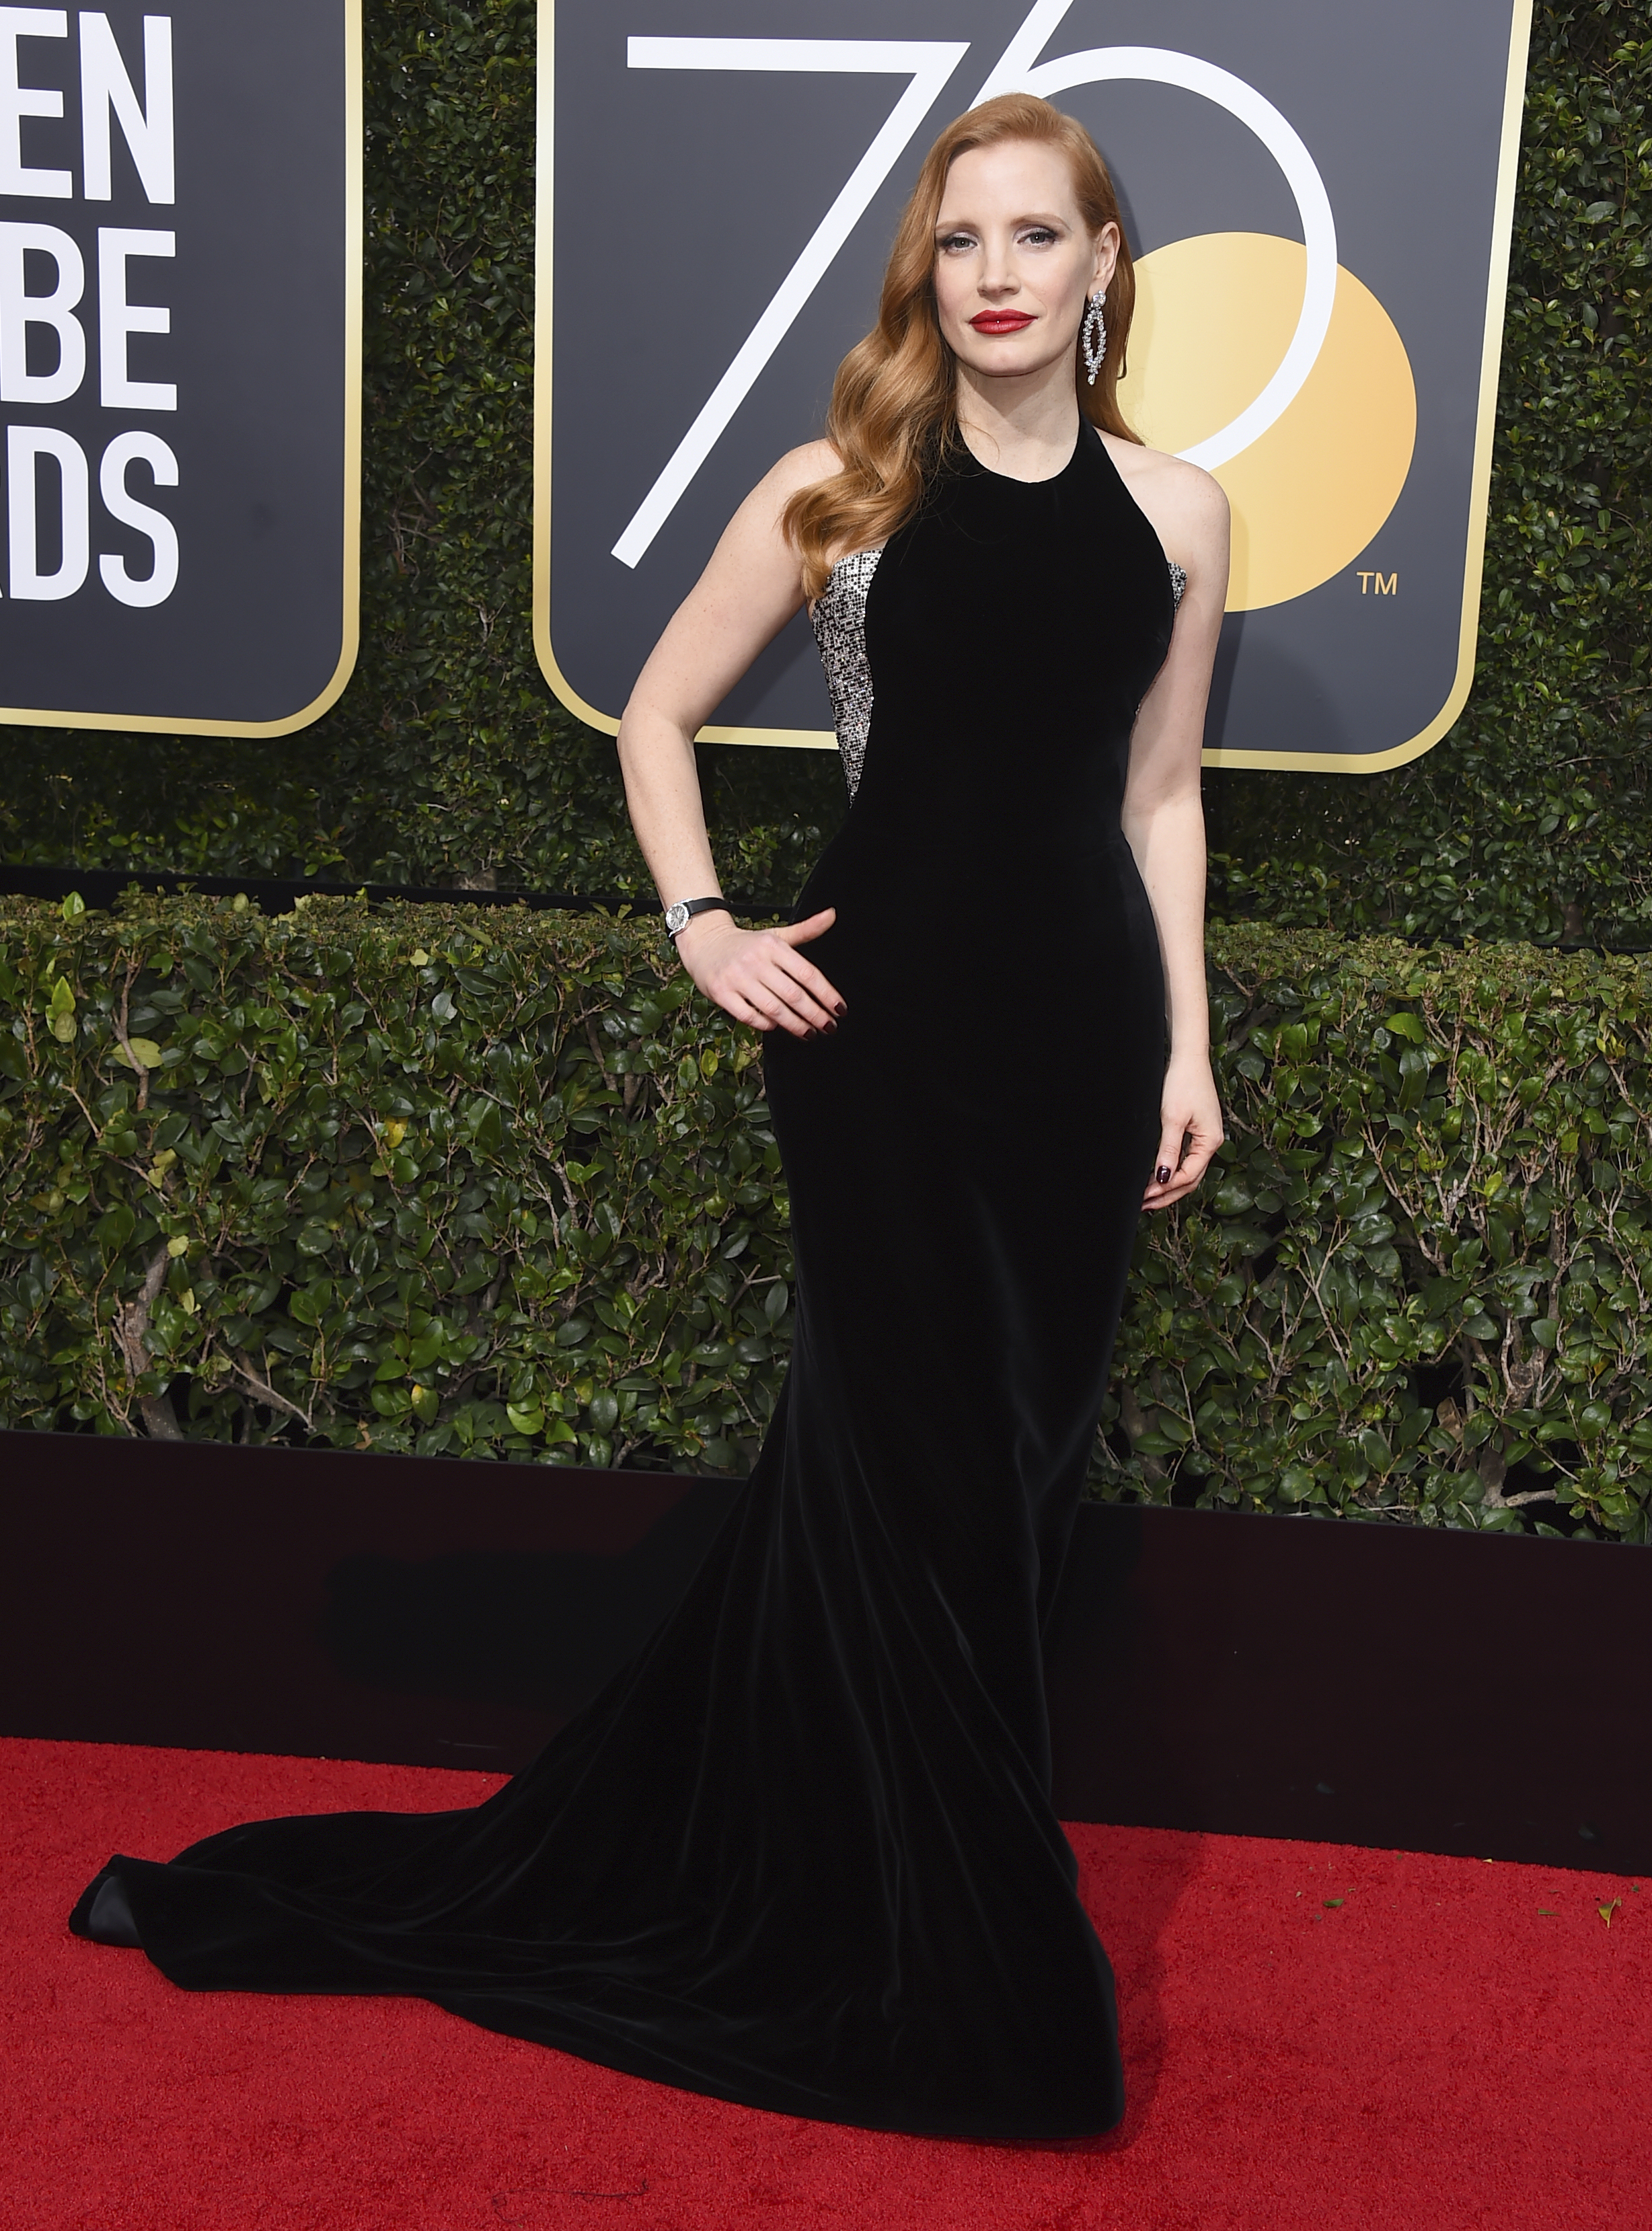 <div class='meta'><div class='origin-logo' data-origin='AP'></div><span class='caption-text' data-credit='Jordan Strauss/Invision/AP'>Jessica Chastain arrives at the 75th annual Golden Globe Awards at the Beverly Hilton Hotel on Sunday, Jan. 7, 2018, in Beverly Hills, Calif.</span></div>